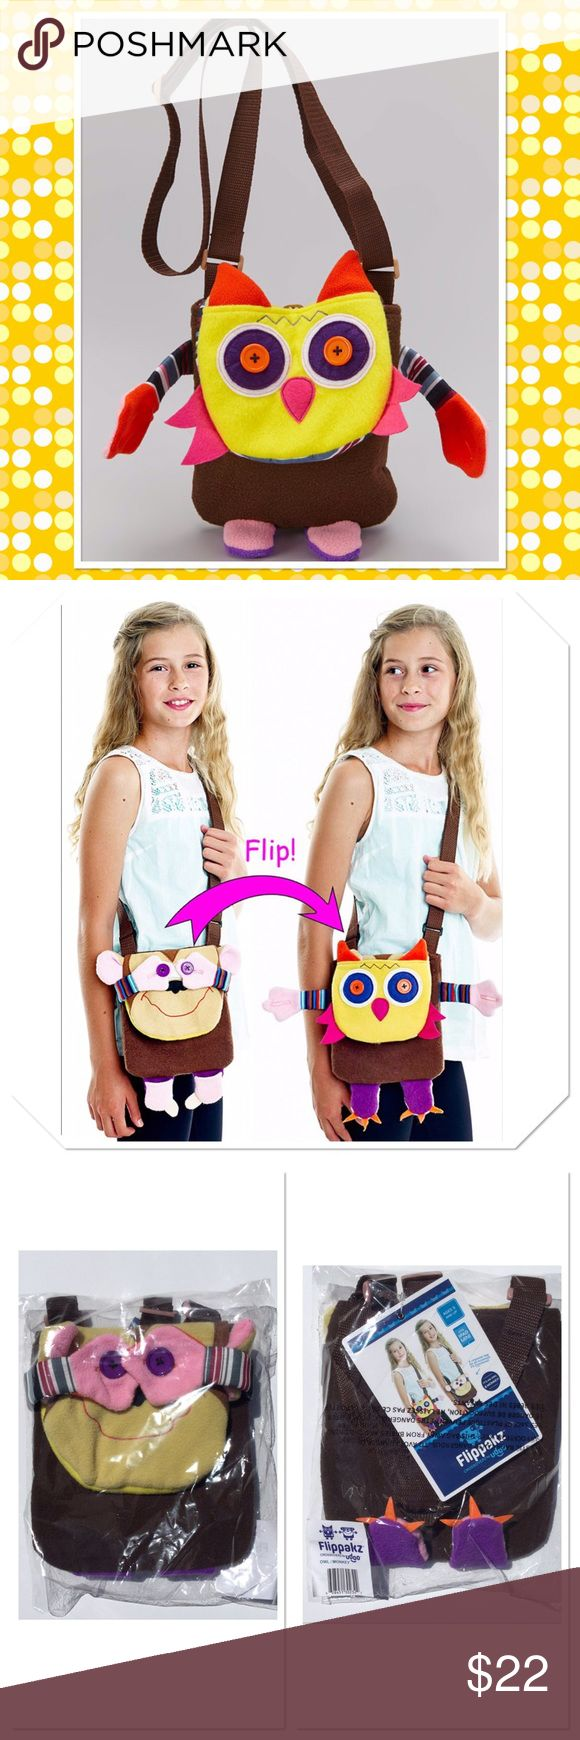 "Owl & Monkey Crossover Flippakz Bag This fun convertible messenger bag goes from one critter to another in a flash, while the adjustable strap adds carrying convenience. 7.5"" W x 8"" L, strap 1"" W x 50"" L, 100% Polyester Boutique Accessories Bags"